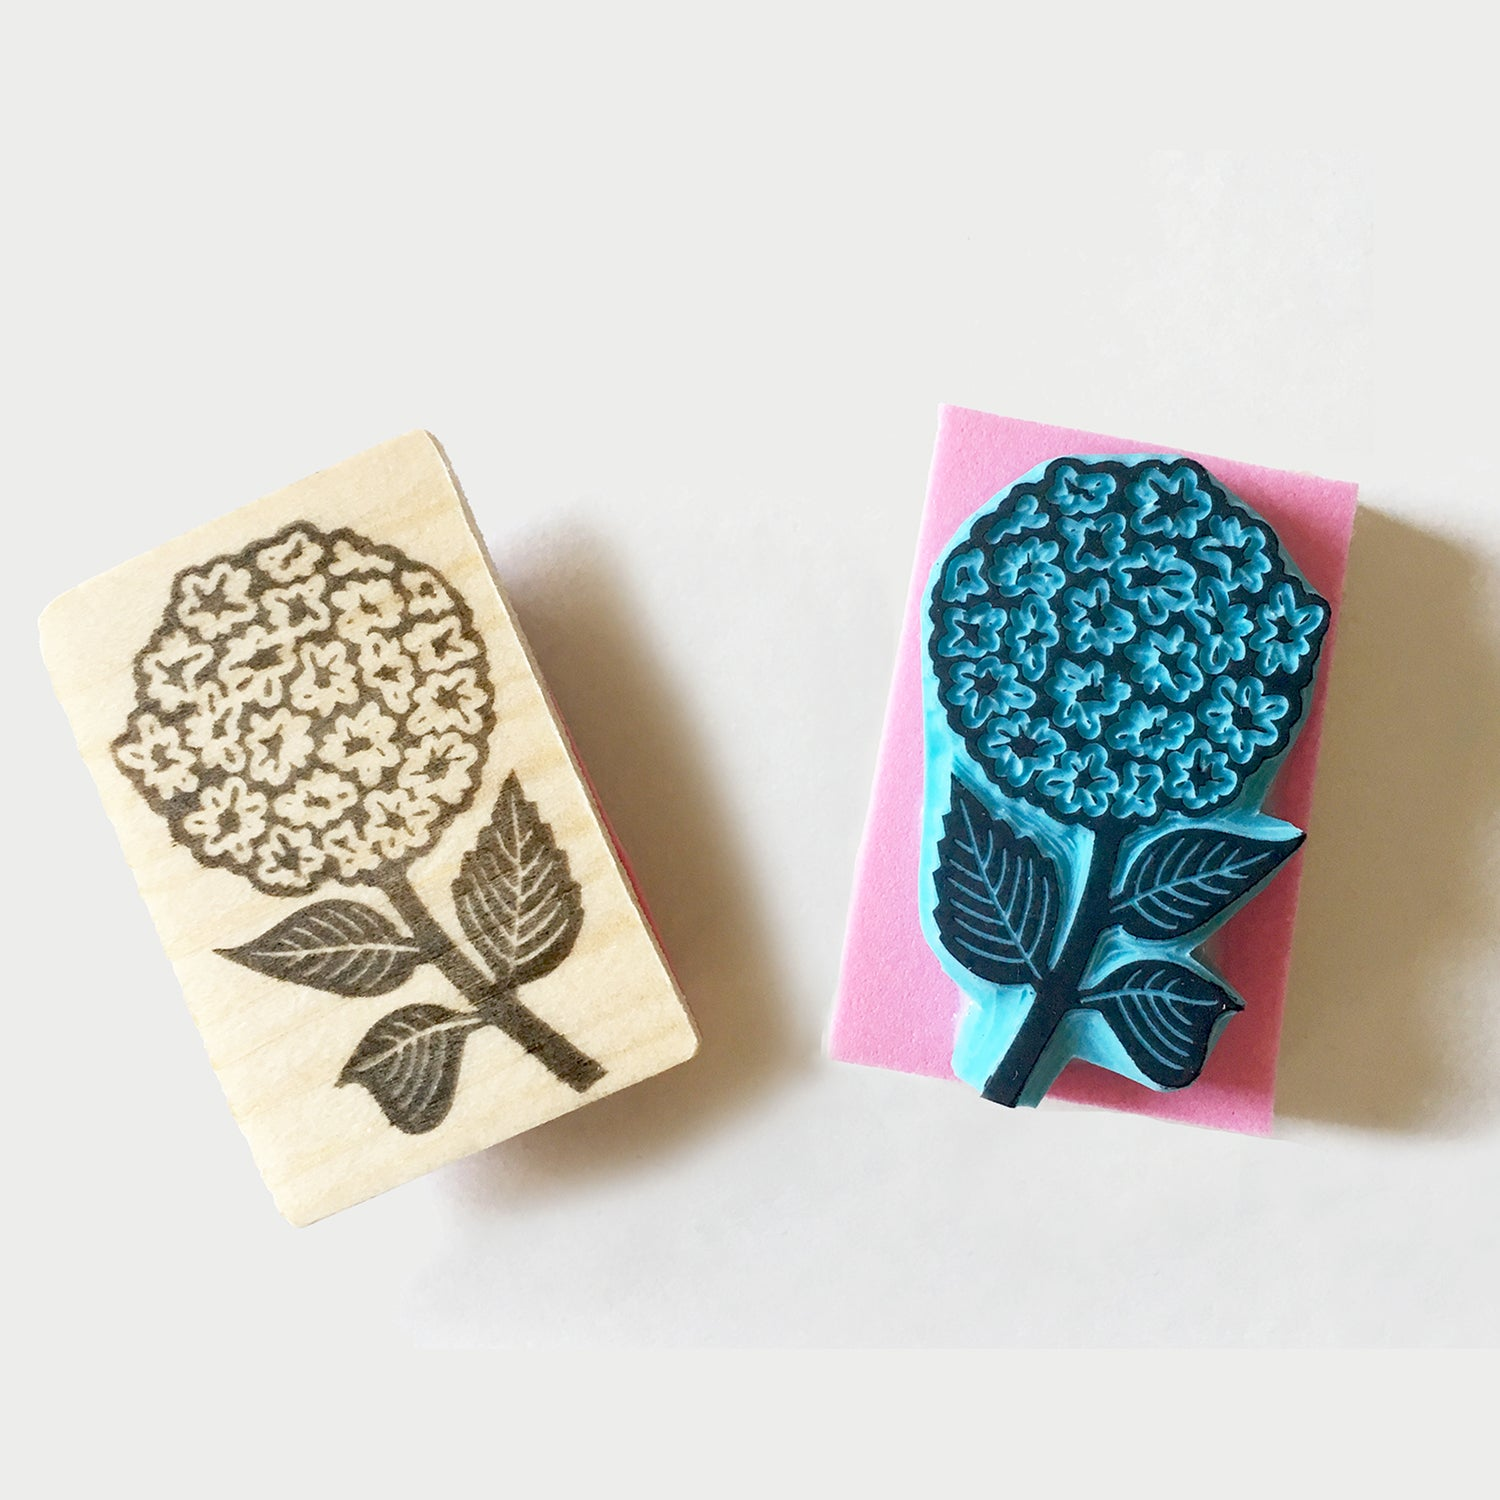 Hydrangea Flower hand carved rubber stamp